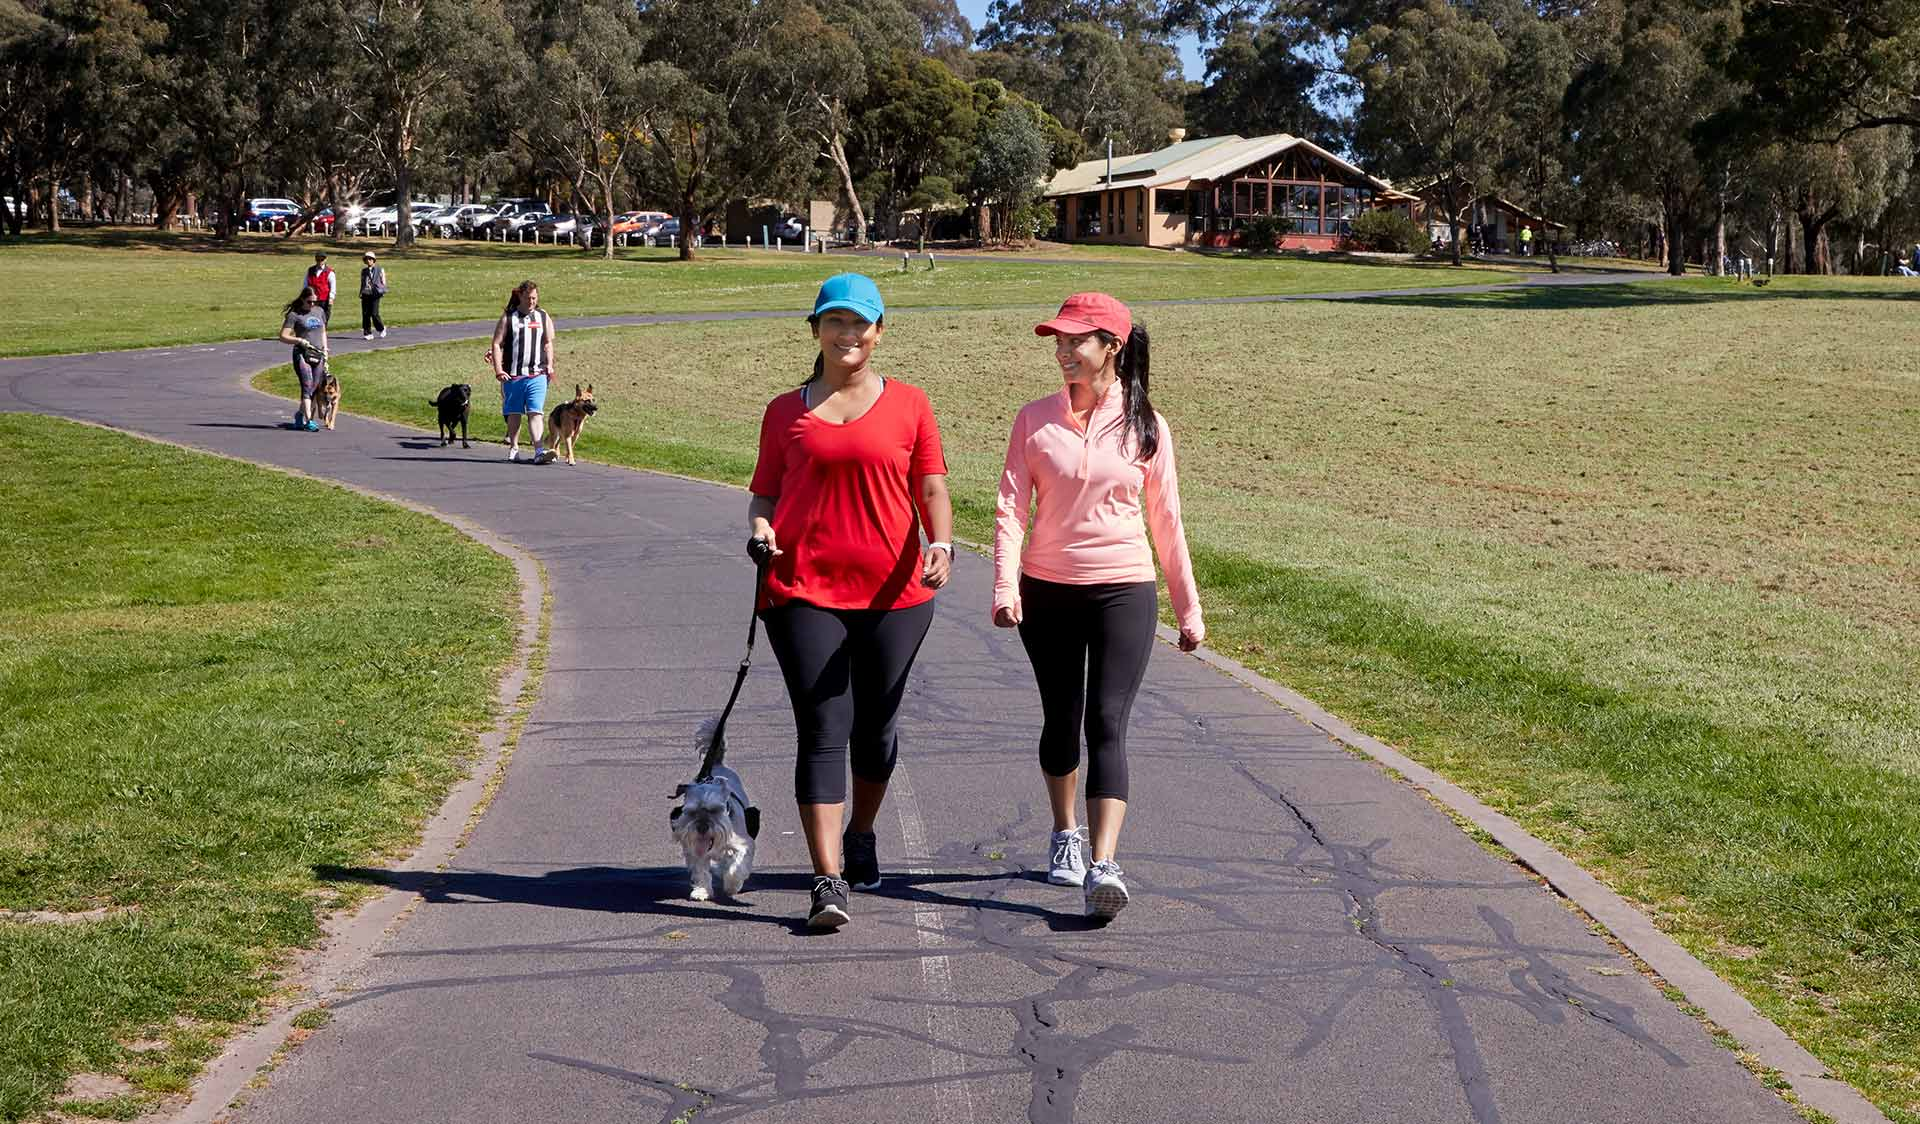 A woman and friend in activewear walking a small dog at Jells Park